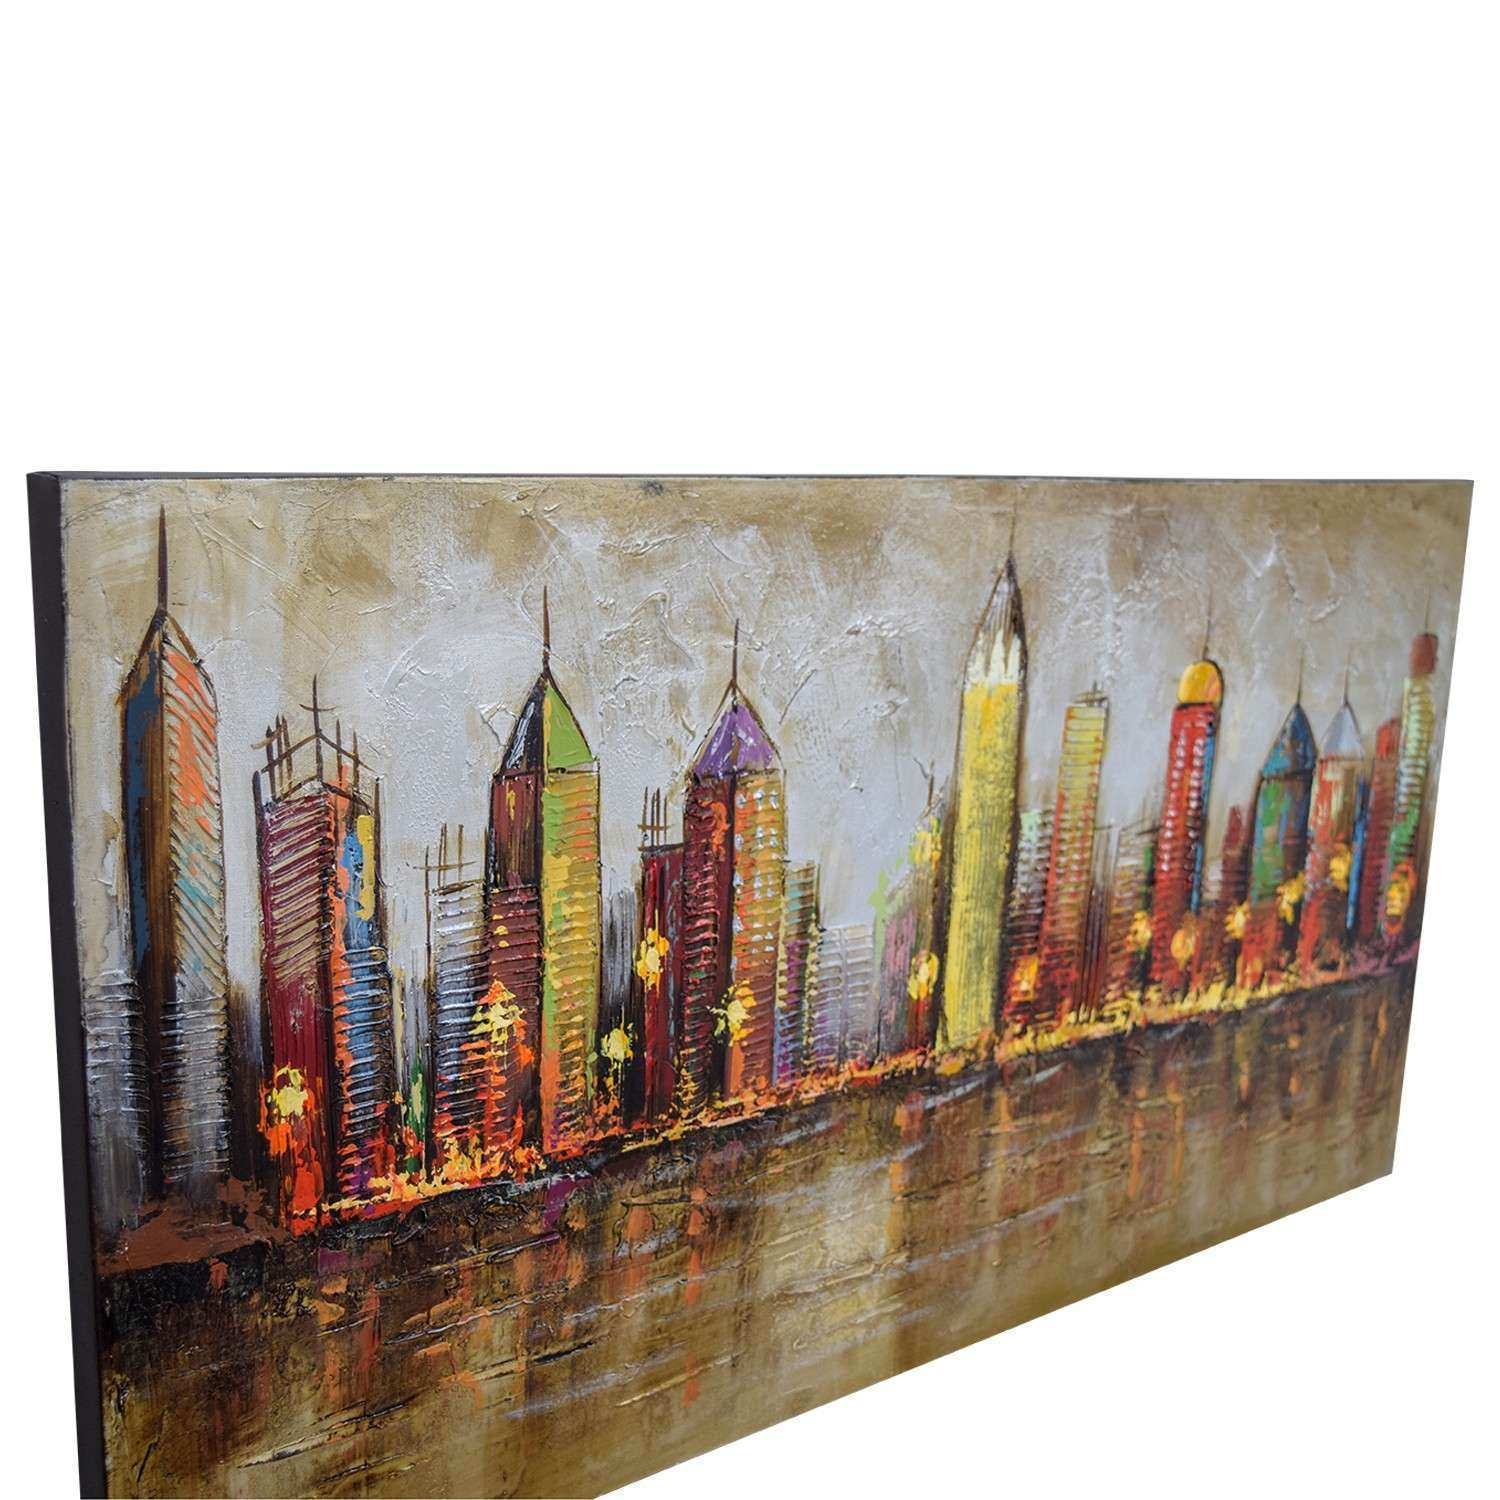 Pier One Imports Wall Decor Inspirational Off 1 Cityscape Painting